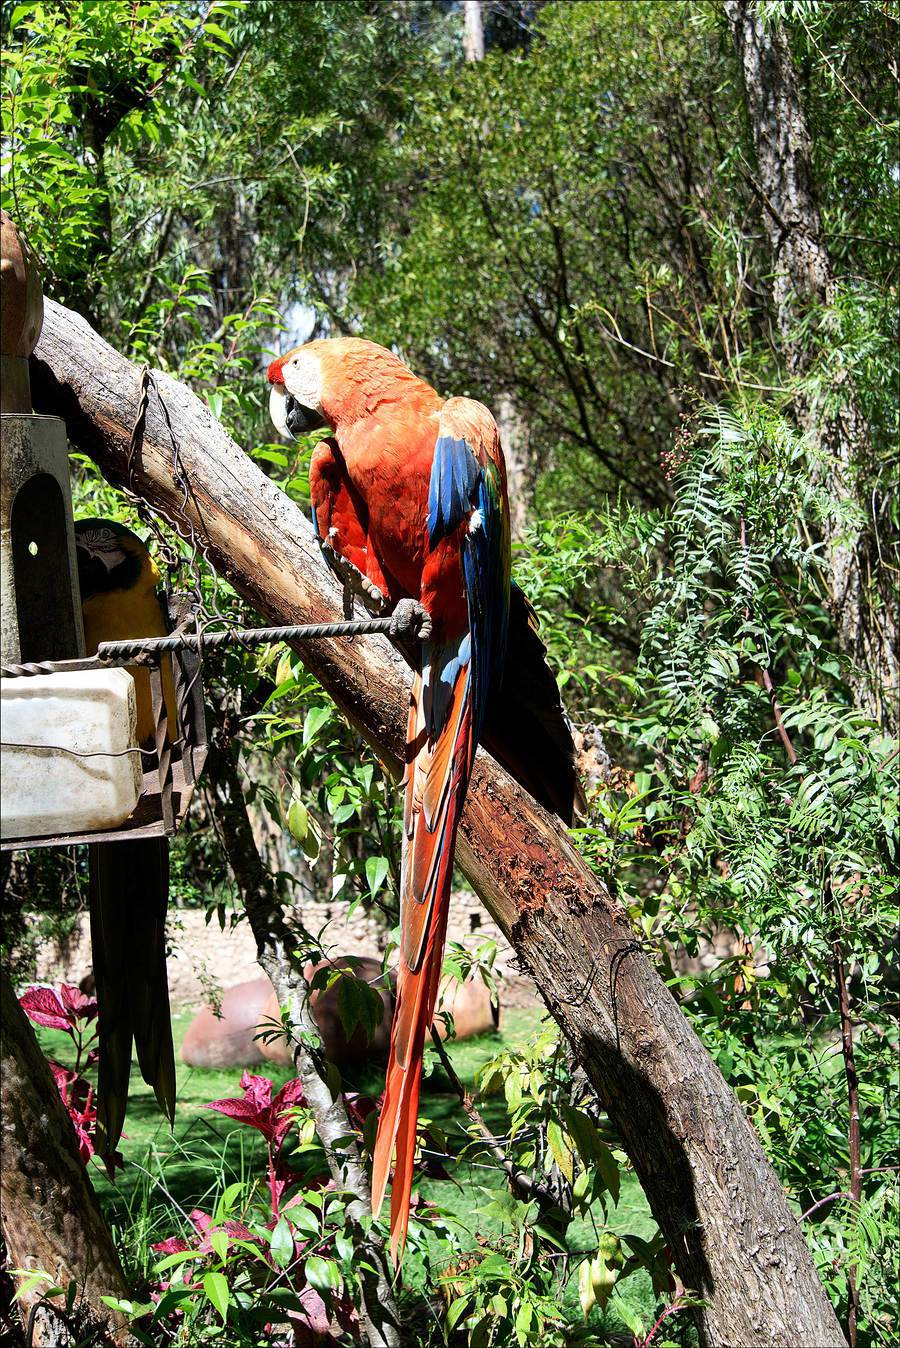 Green Winged Macaw. / Photography by Jerome Razoir / Uploaded 5th June 2015 @ 07:38 PM